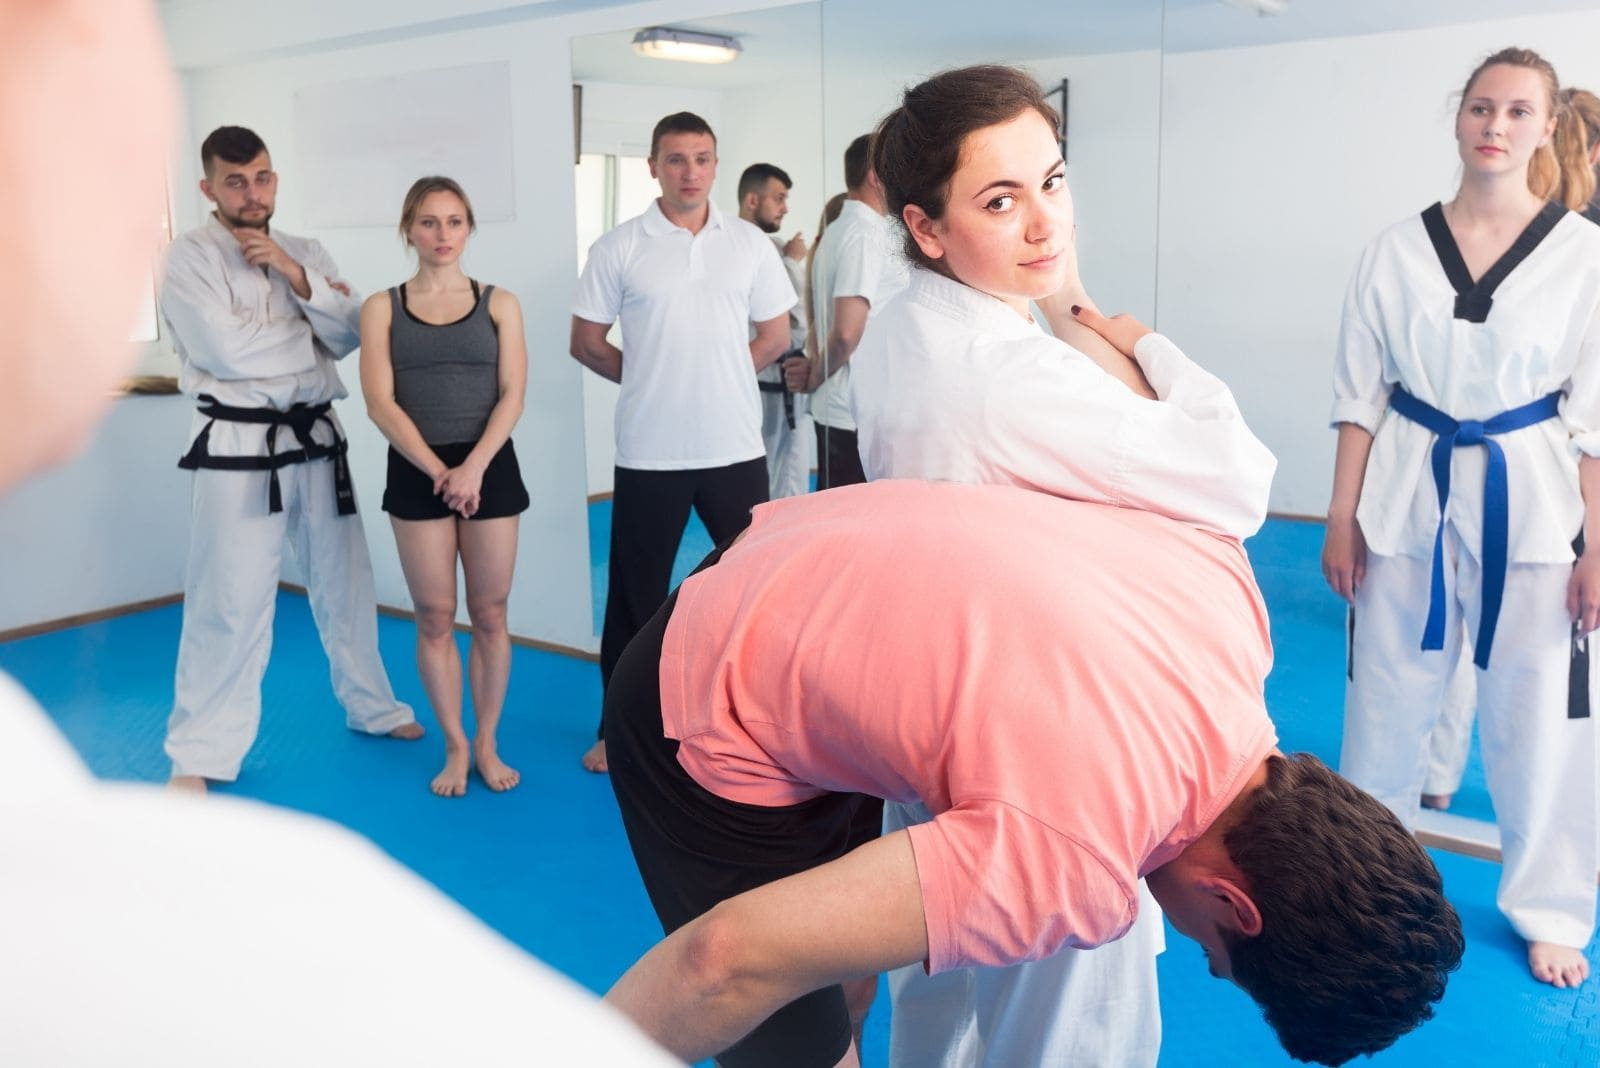 woman trainor showing defense method in training taekwondo in front of students